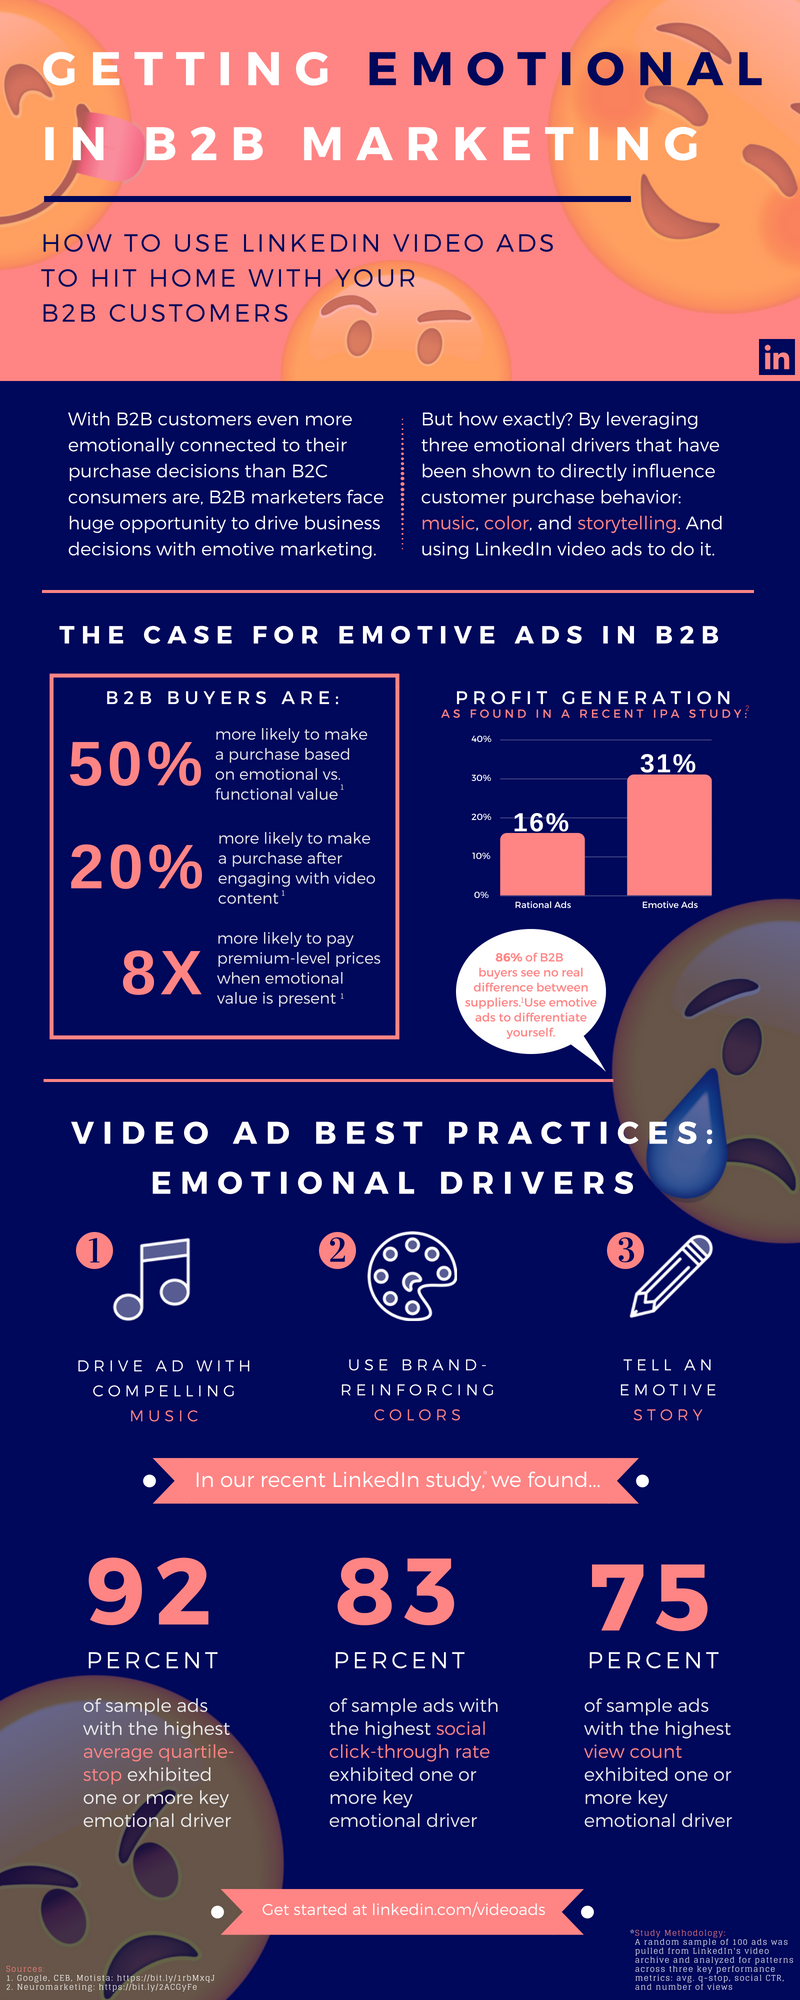 LinkedIn Video Ads Infographic